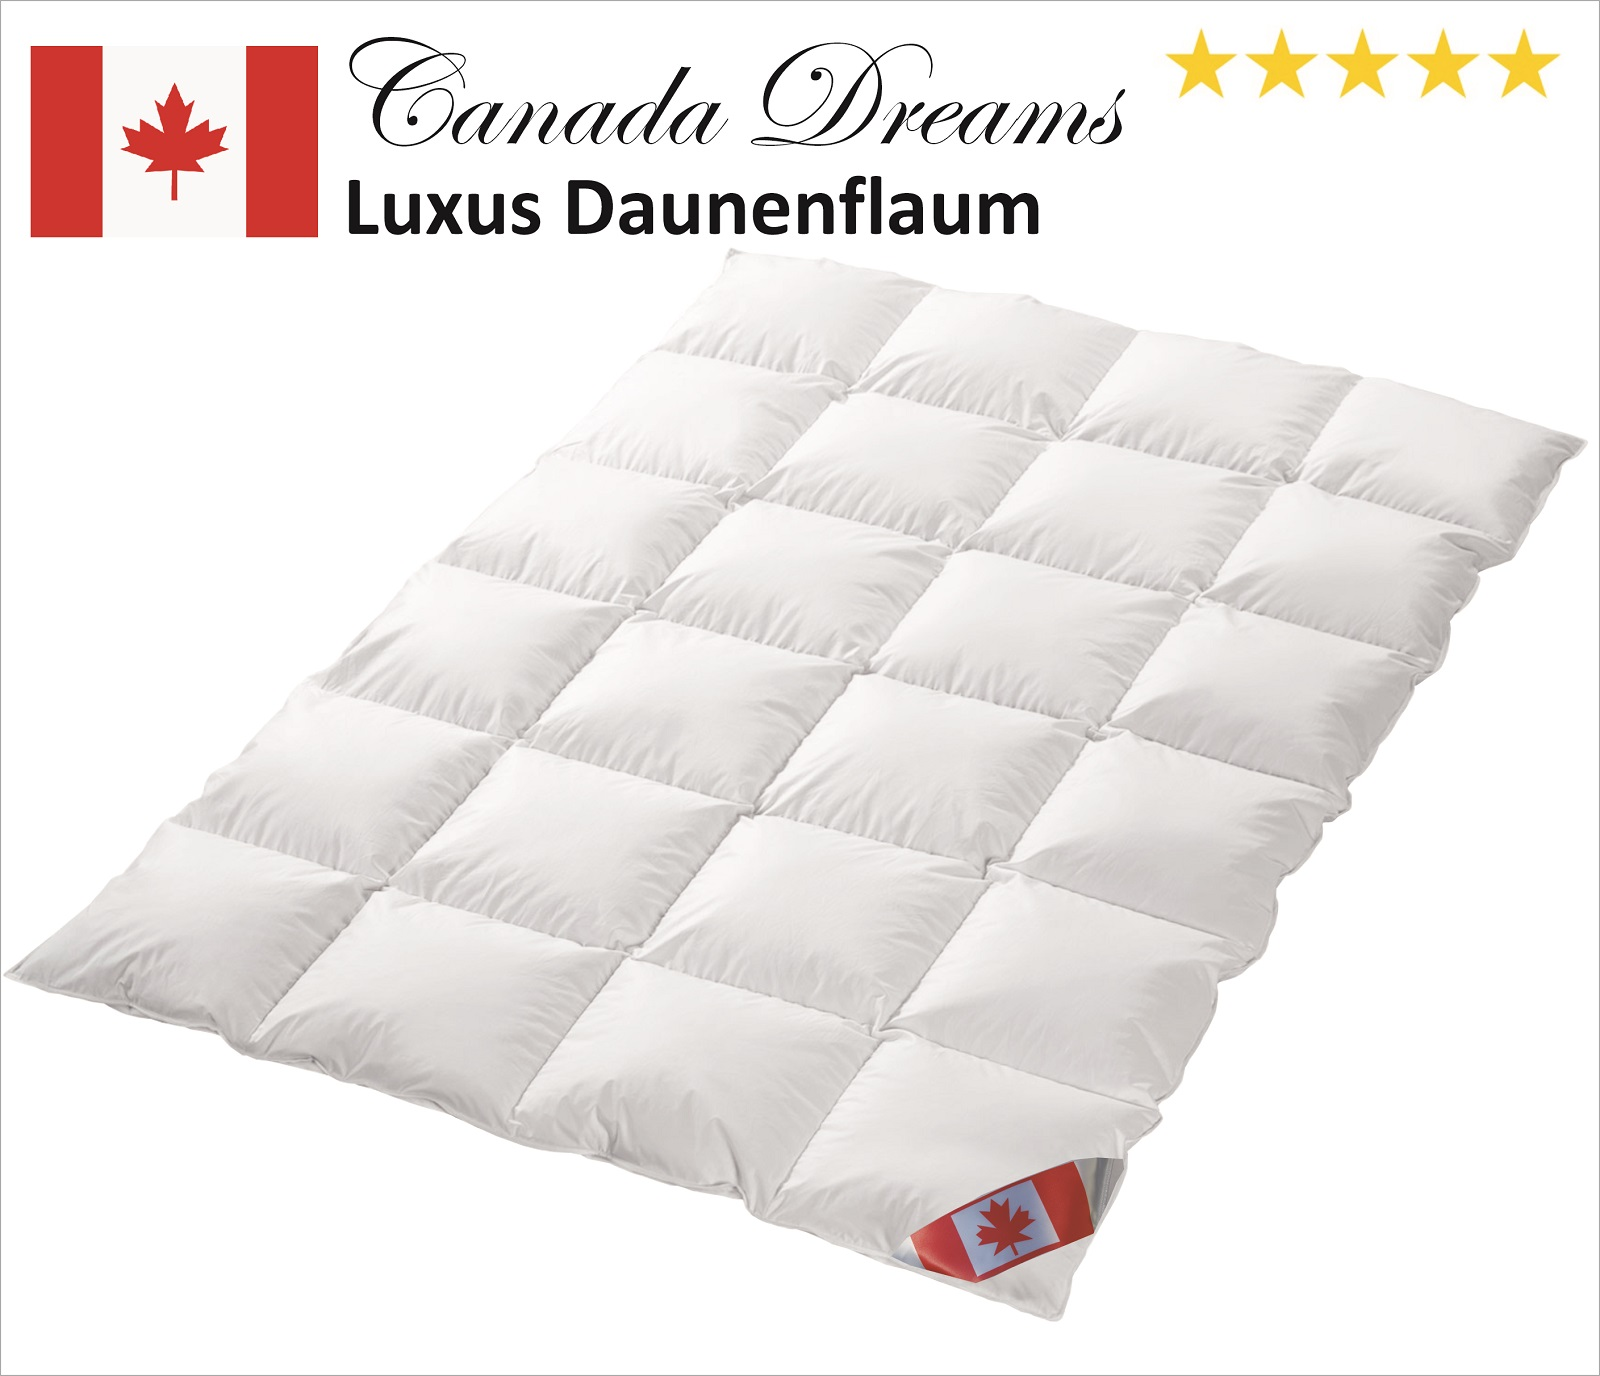 Canada Dreams Luxus Winter Daunendecke PLUS Wärmegrad 4 135x200